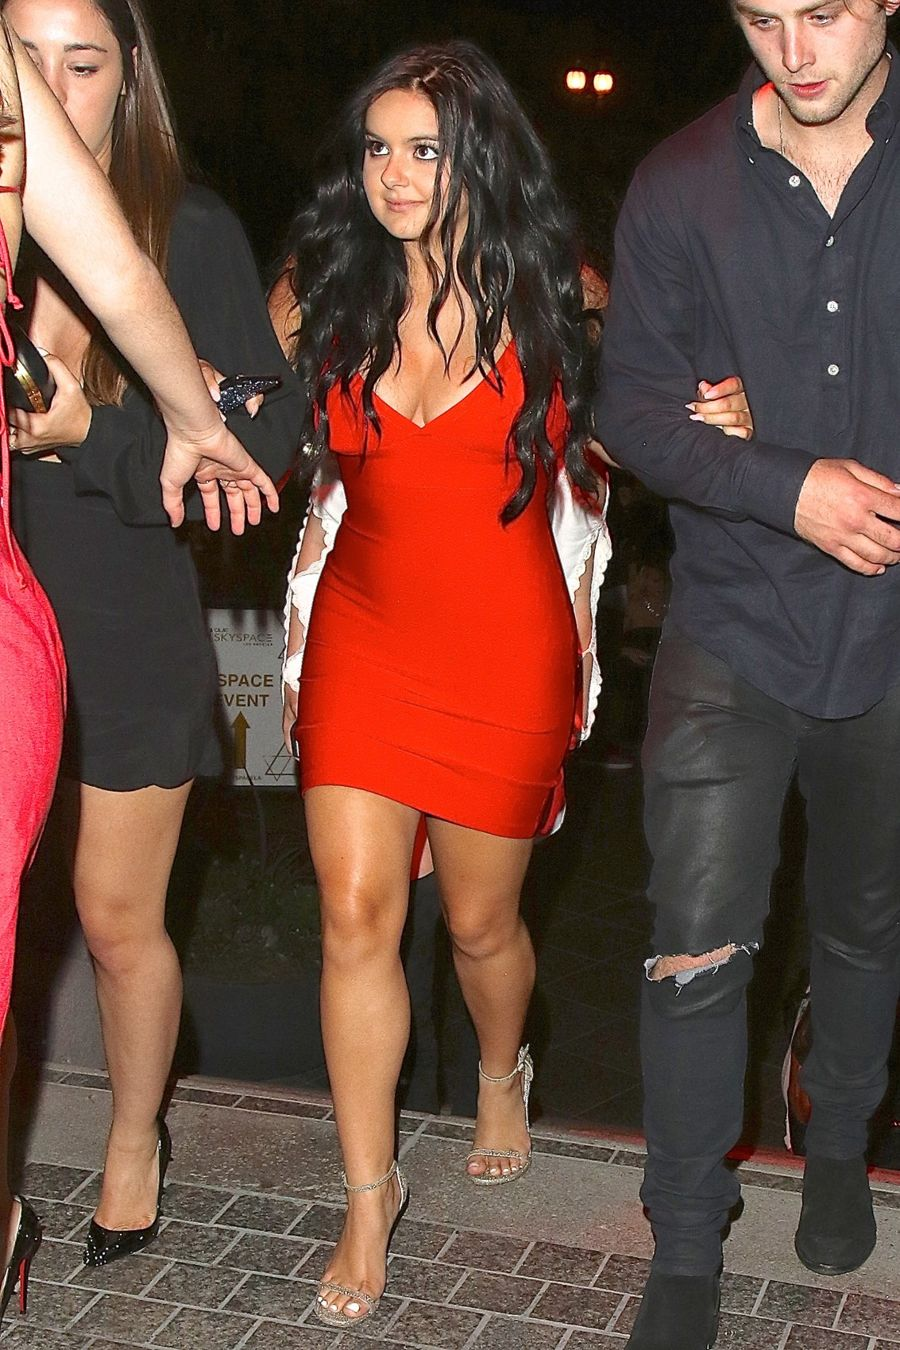 Ariel Winter Bodycon Dress changes her Personality